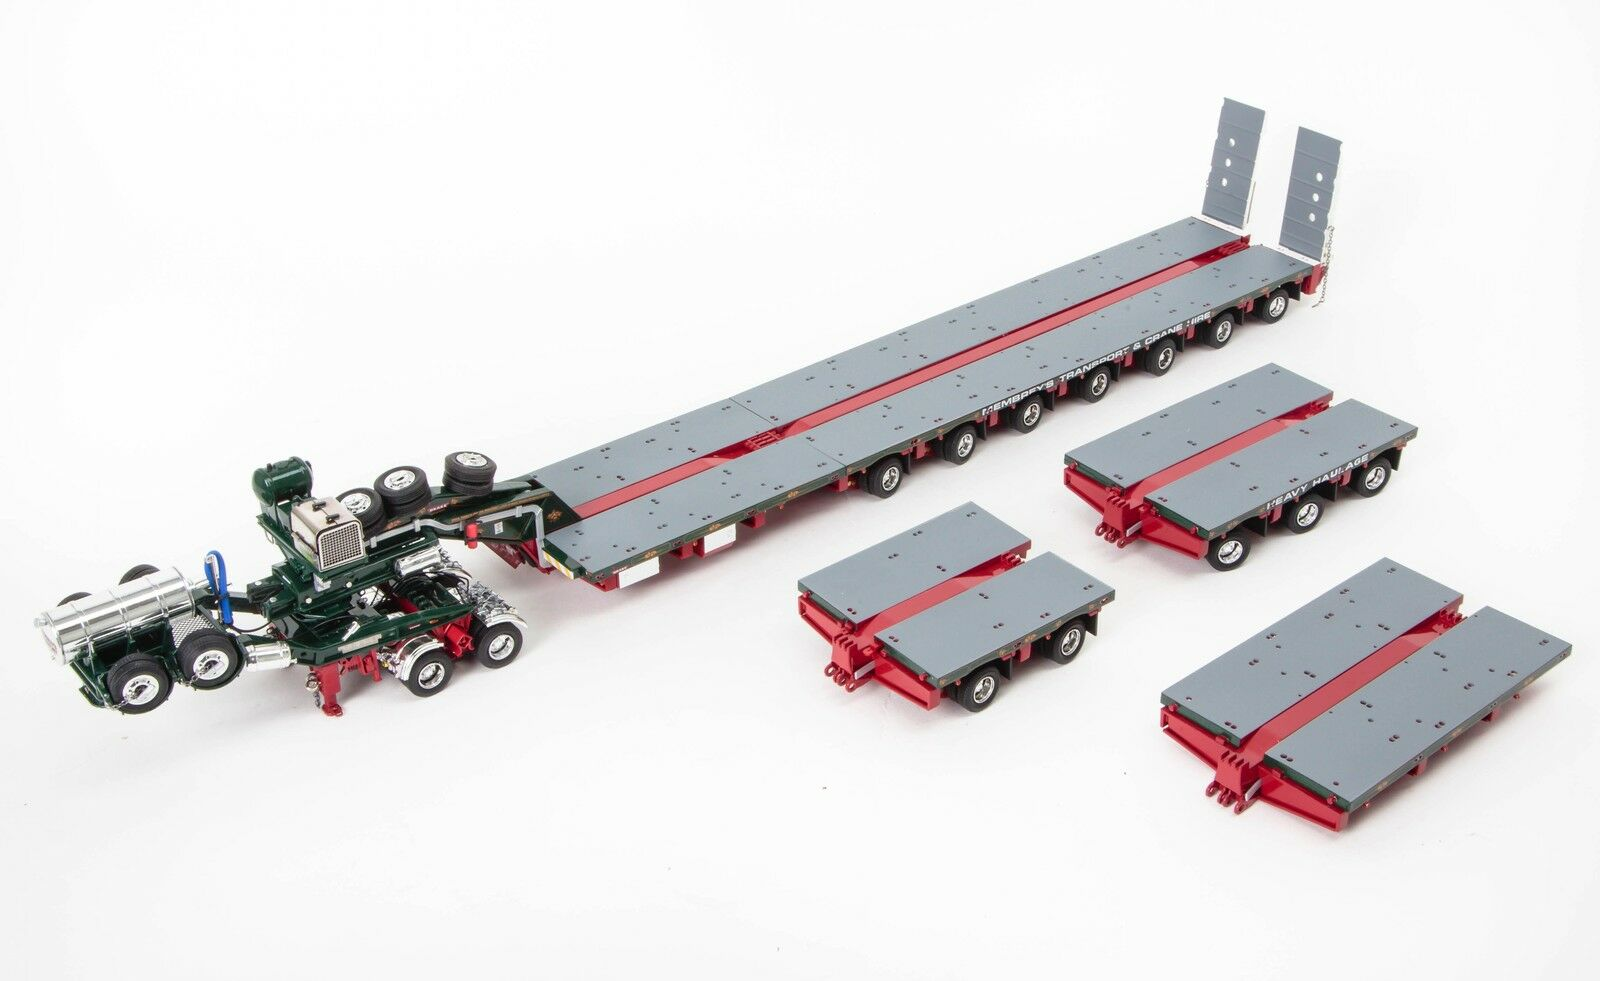 Drake 7x8 Steerable Trailer & 2x8 Dolly & Accessory Set Membrey's 1 50